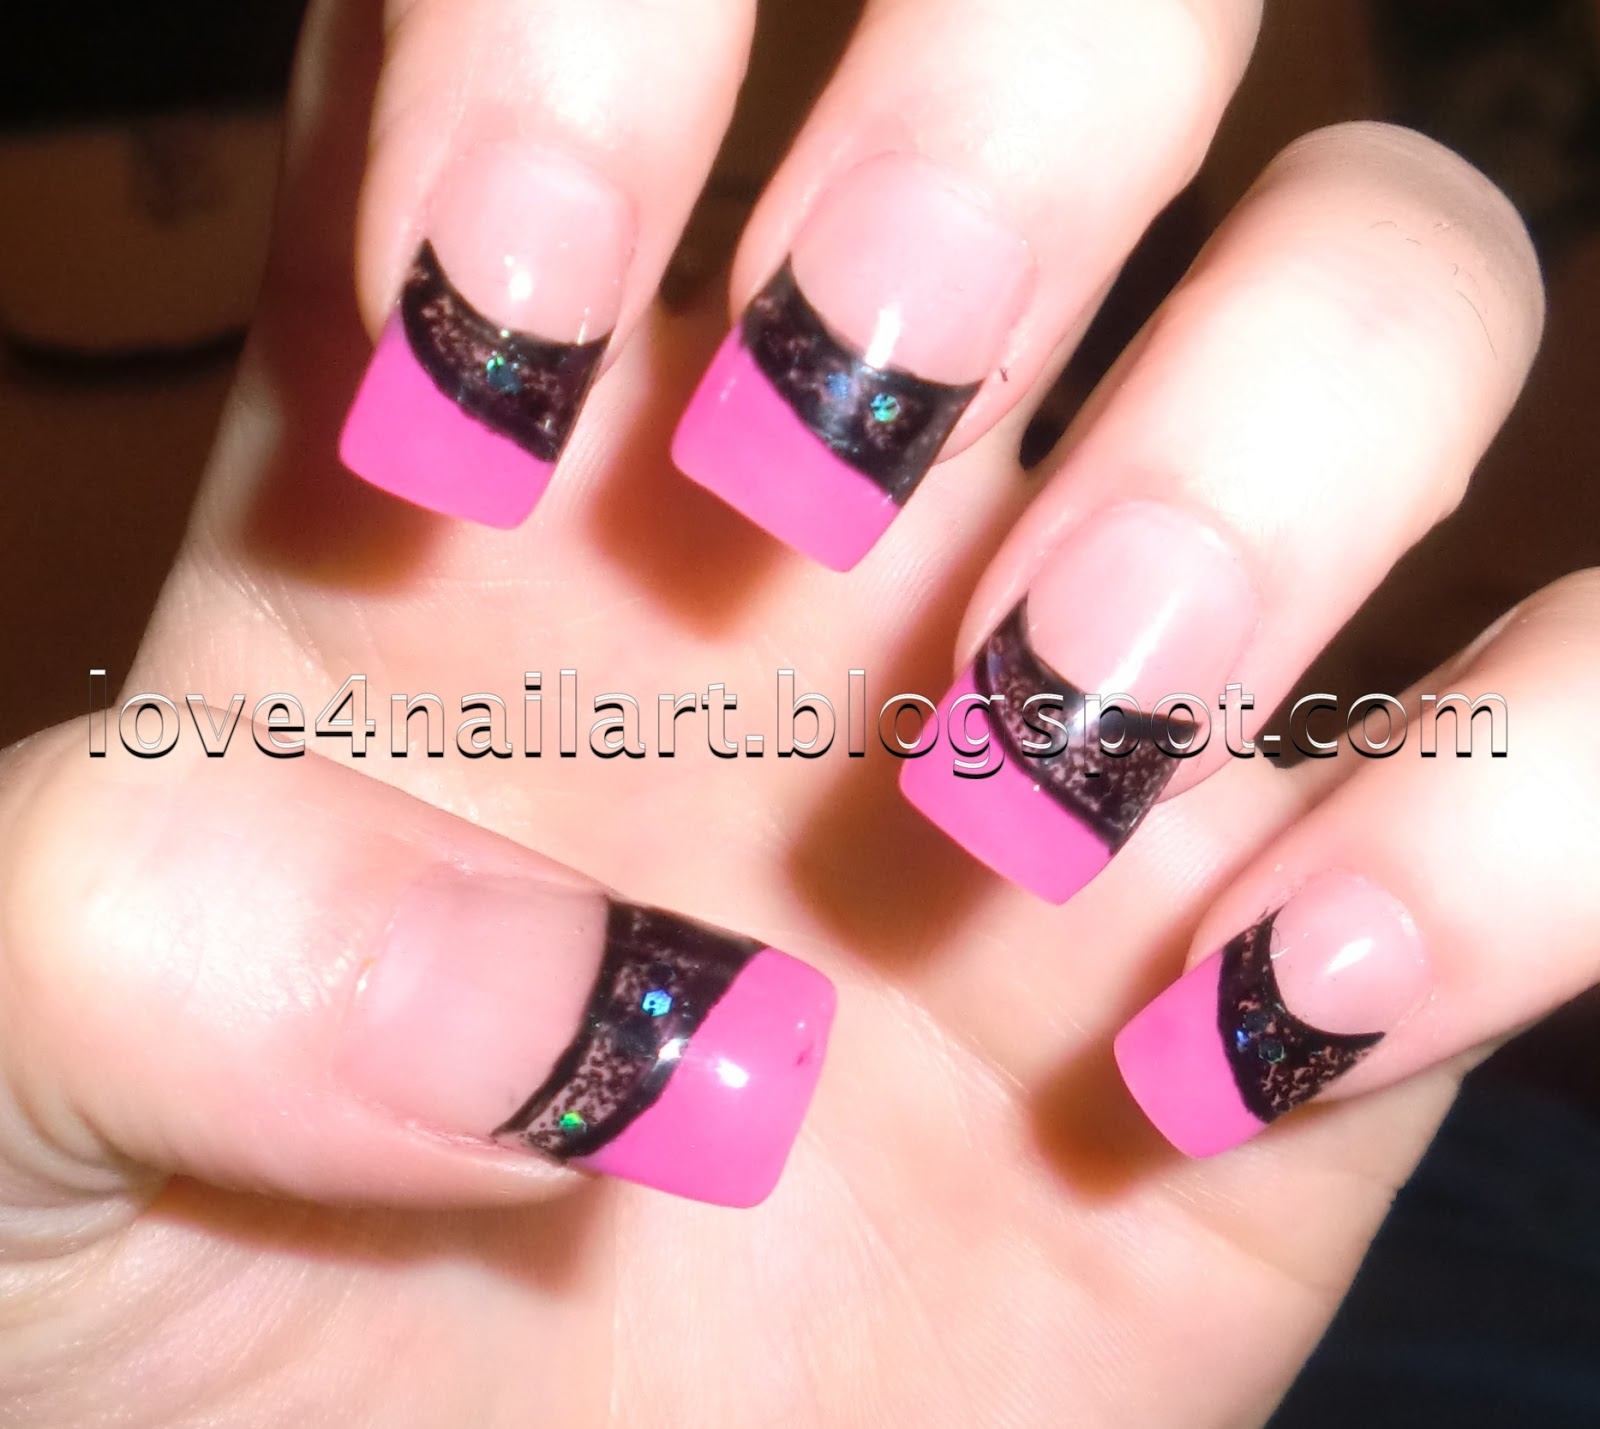 love4nailart pink amp black encapsulated colored acrylic nails